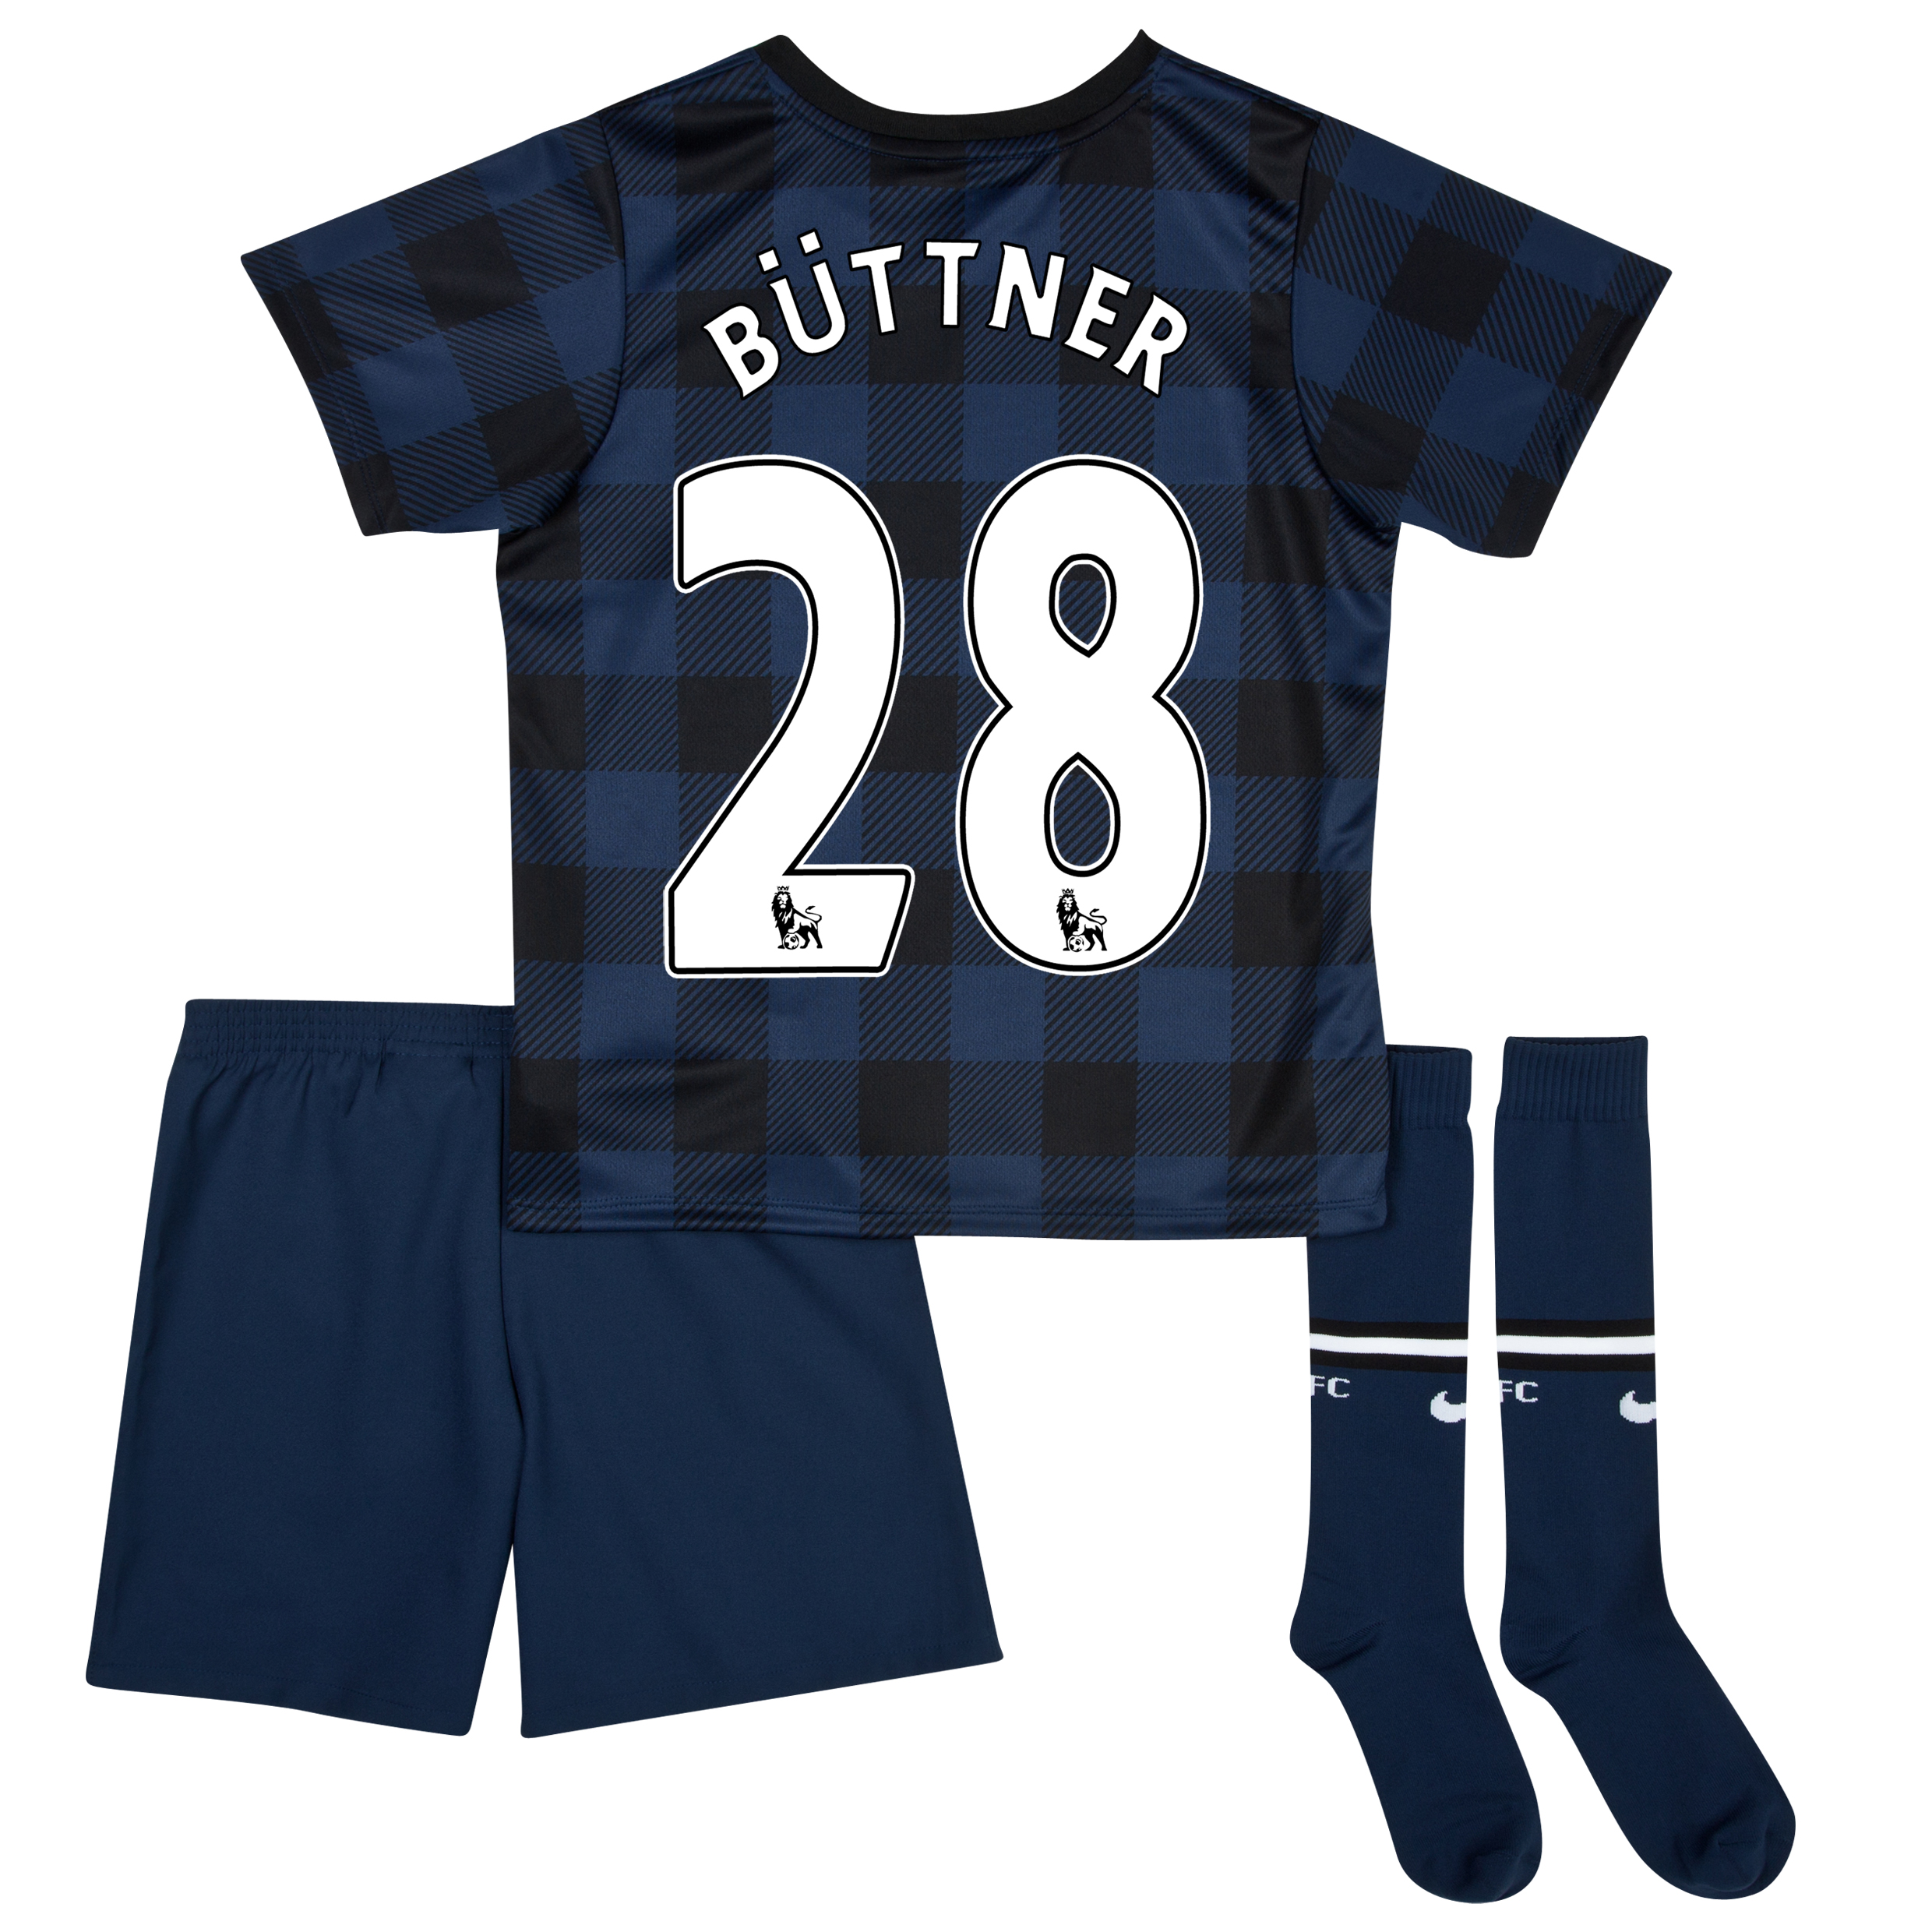 Manchester United Away Kit 2013/14 - Little Boys with Büttner 28 printing